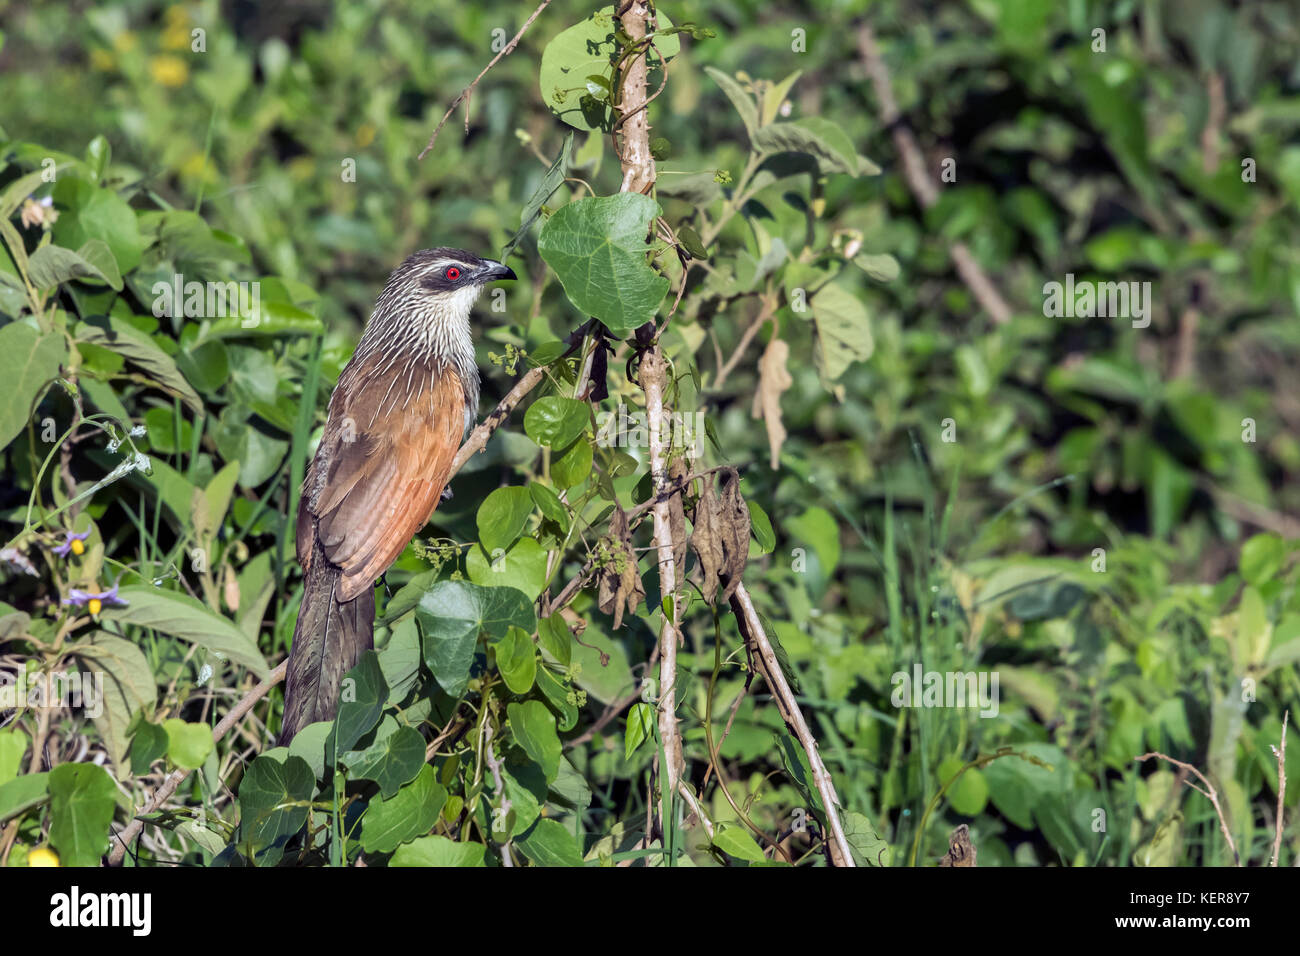 White-browed coucal, AKA lark-heeled cuckoo (Centropus superciliosus), Arusha NP, Tanzania - Stock Image